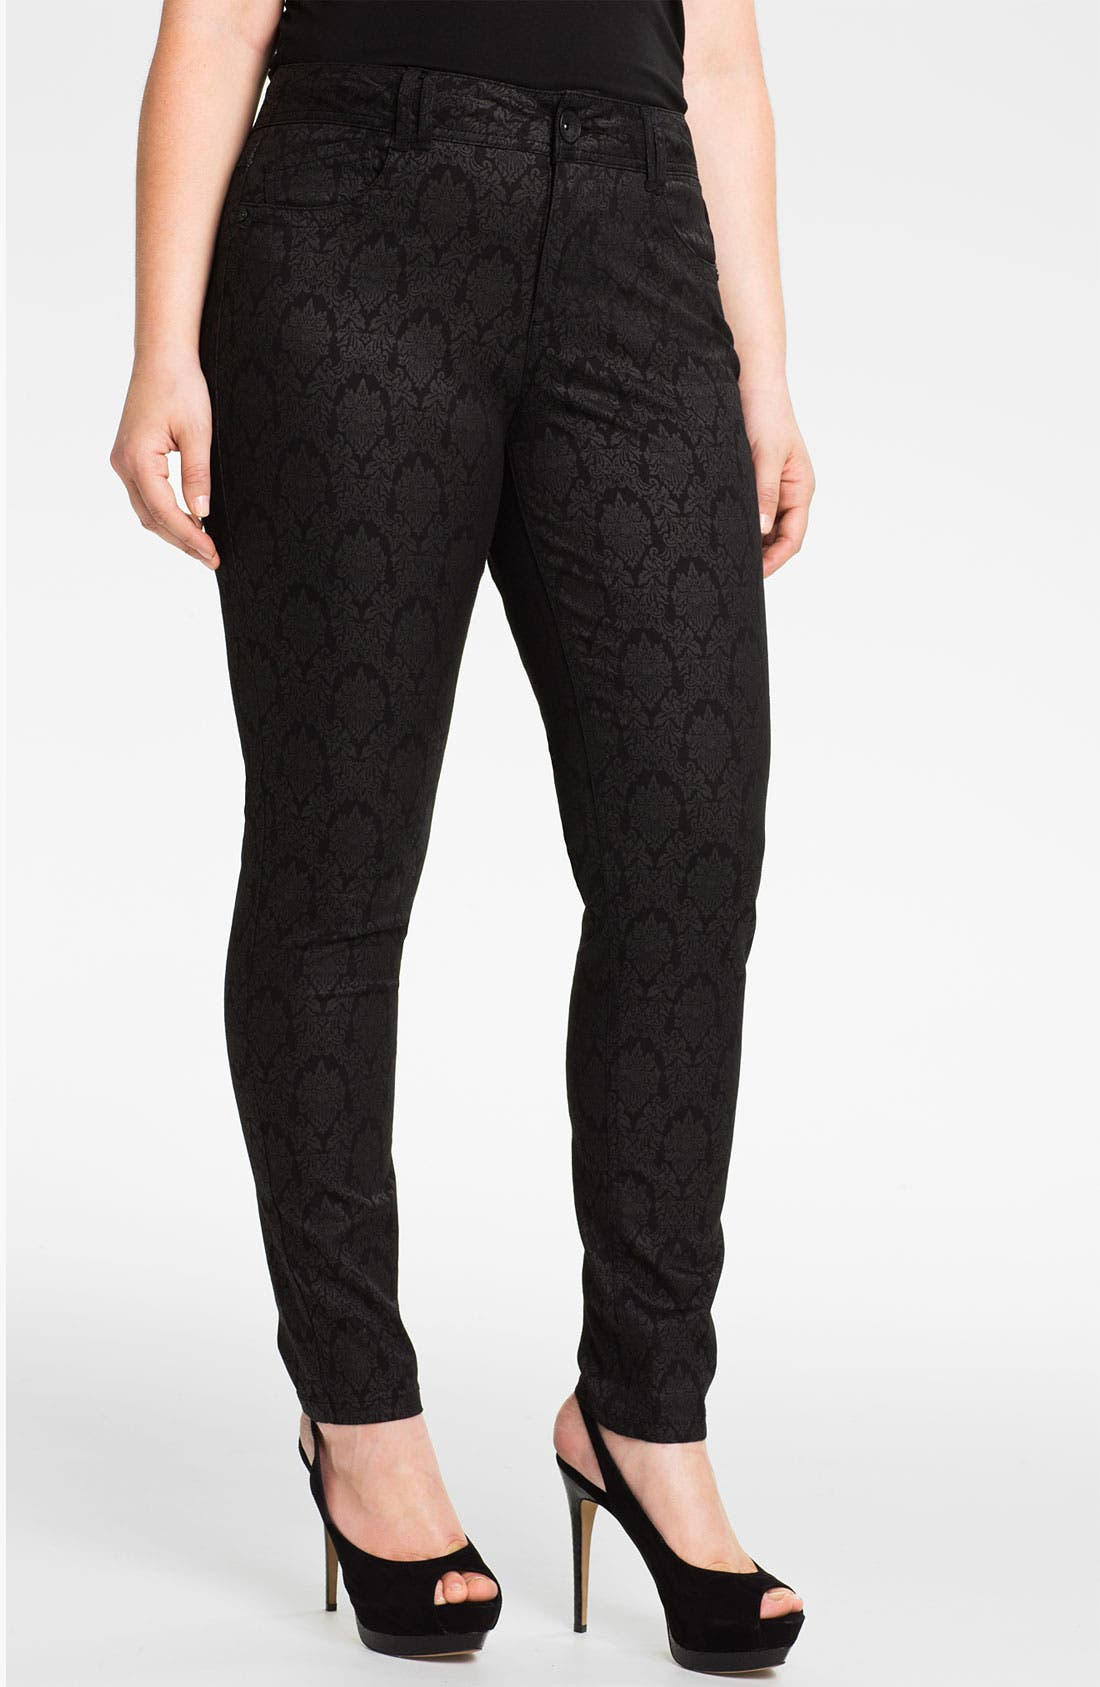 Alternate Image 1 Selected - Wit & Wisdom Brocade Denim Leggings (Plus) (Nordstrom Exclusive)